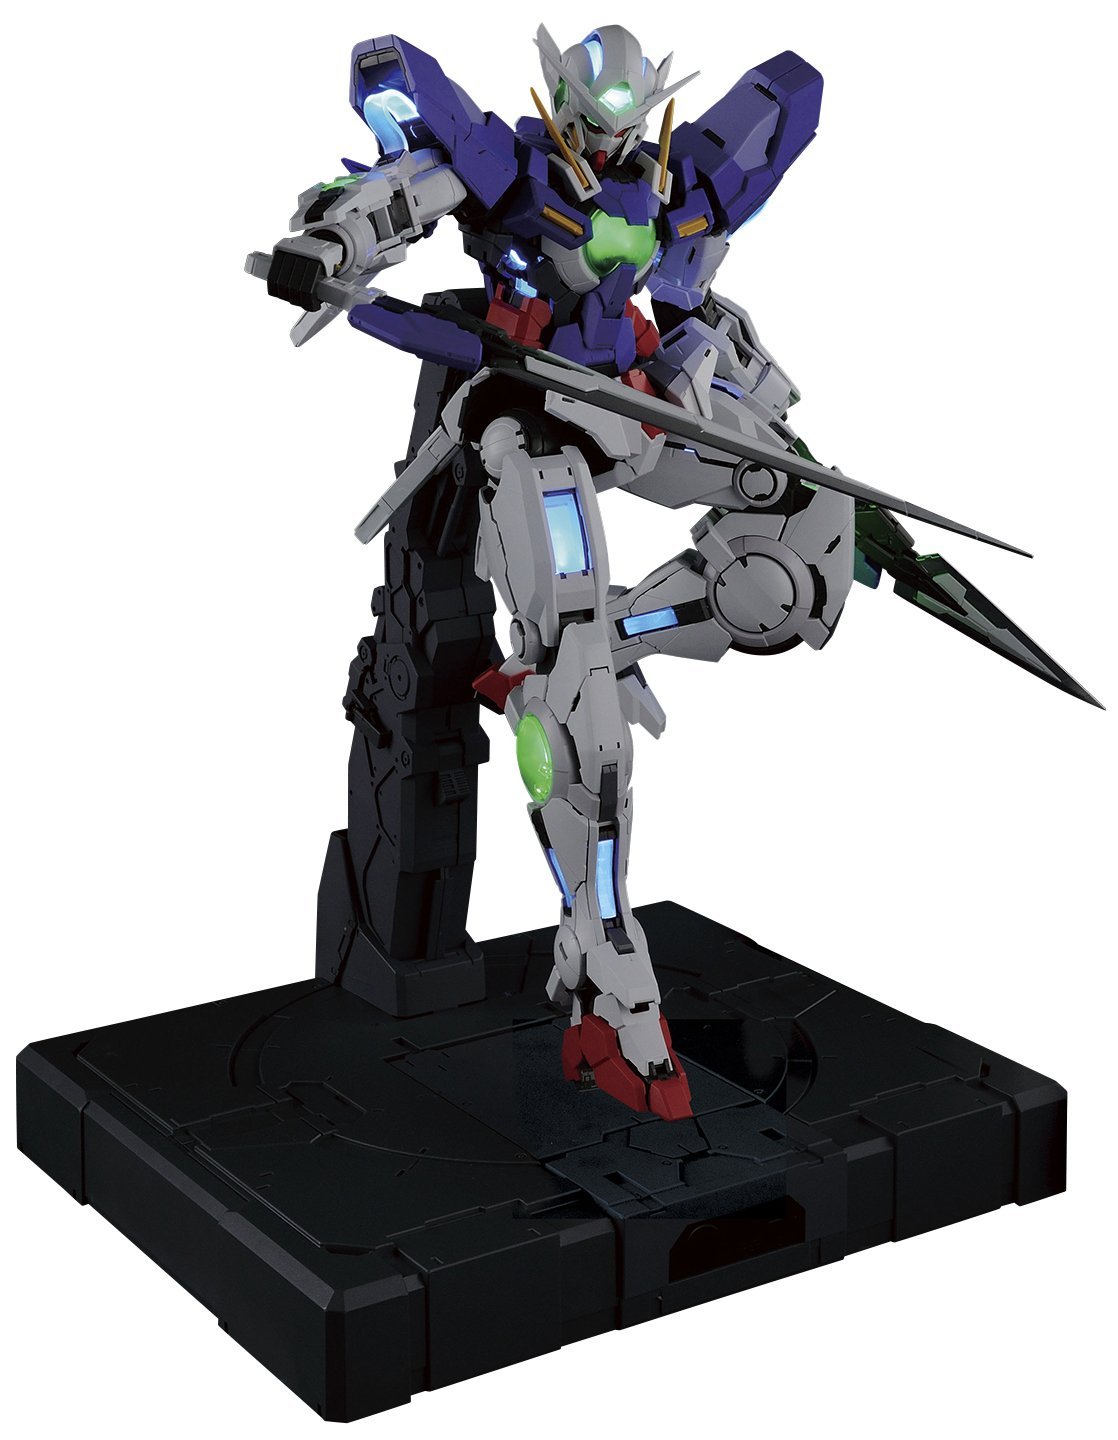 Bandai Hobby PG 1/60 GN-001 Gundam Exia (Lighting Mode) Model Kit Figure